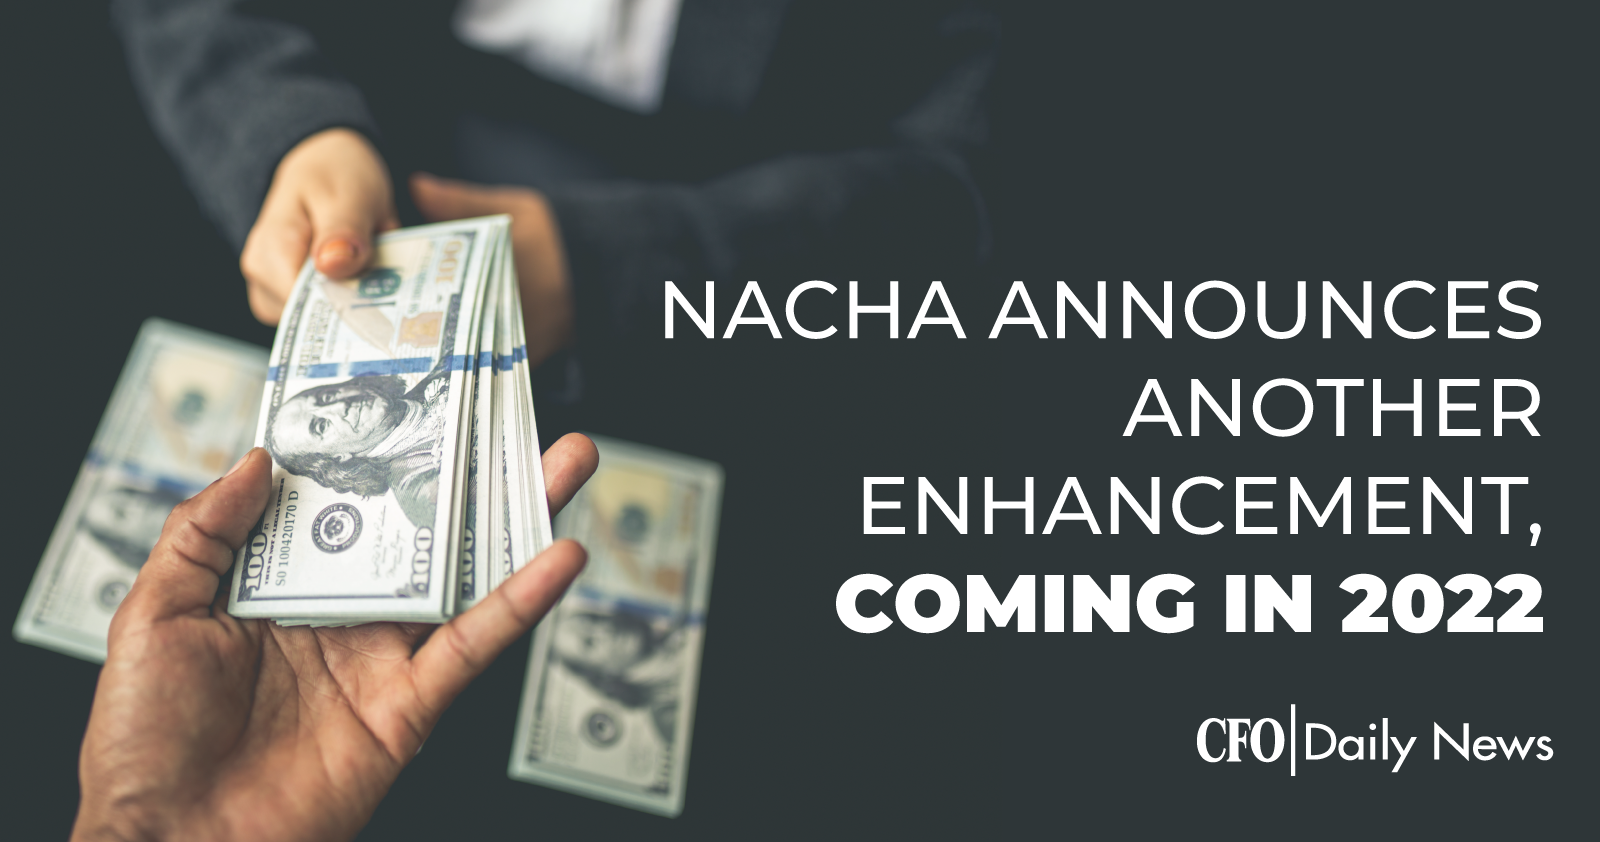 Nacha Announces Another Enhancement Coming In 2022